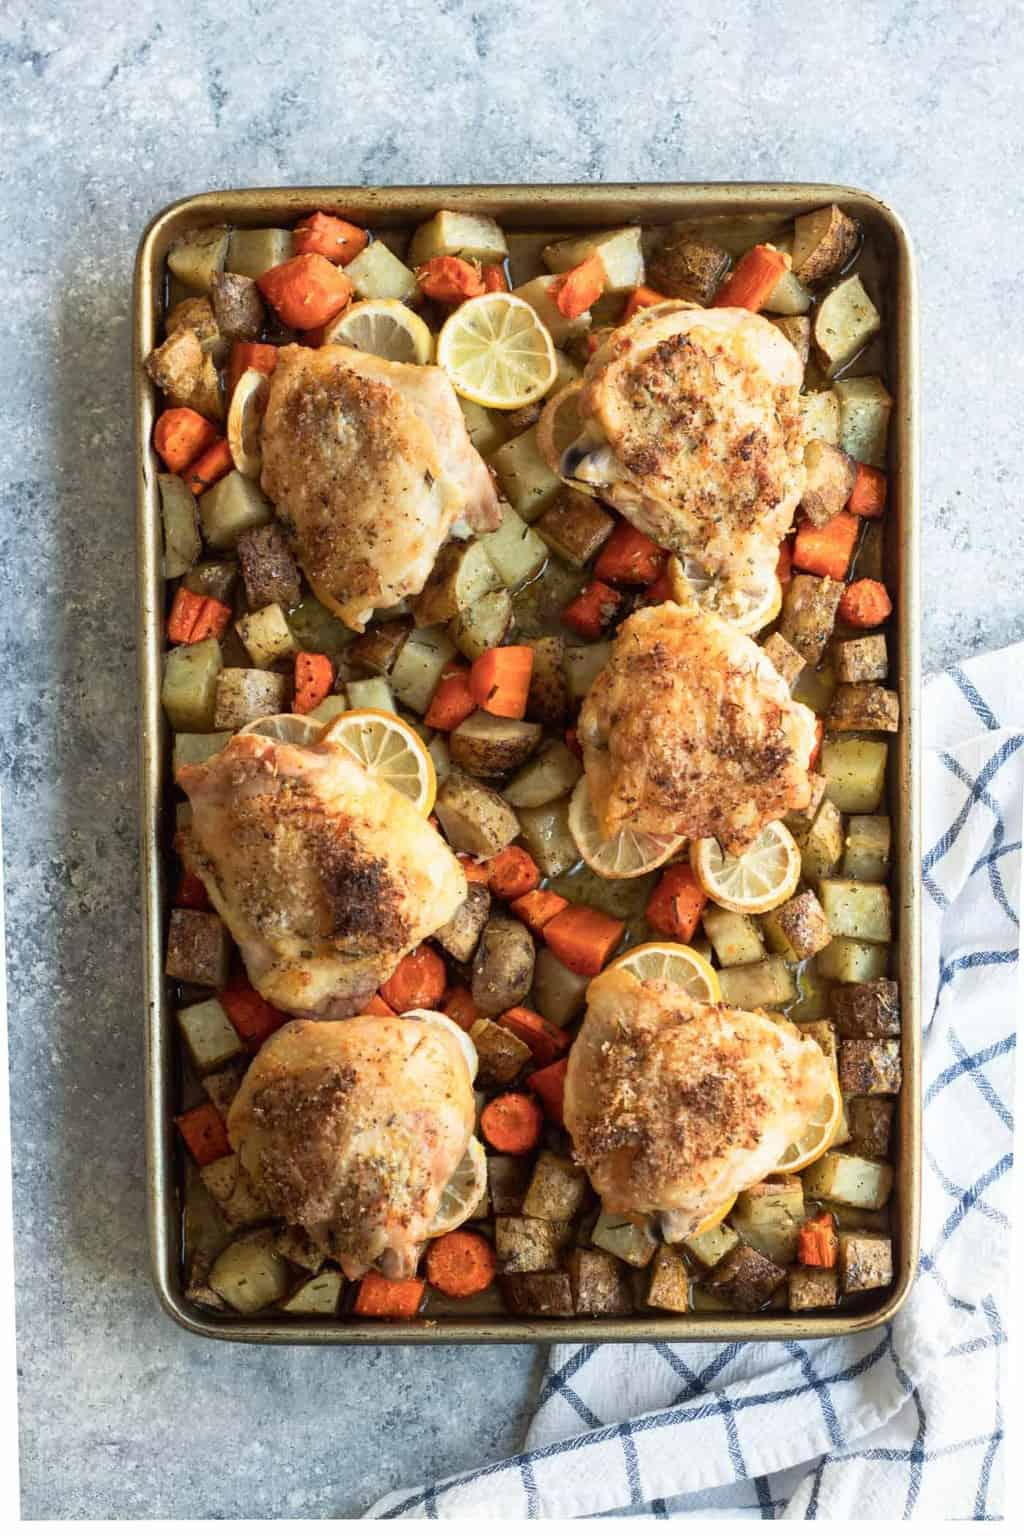 photo of the healthy and easy Rosemary Lemon Chicken Sheet Pan Dinner by top Houston lifestyle blogger Ashley Rose of Sugar & Cloth